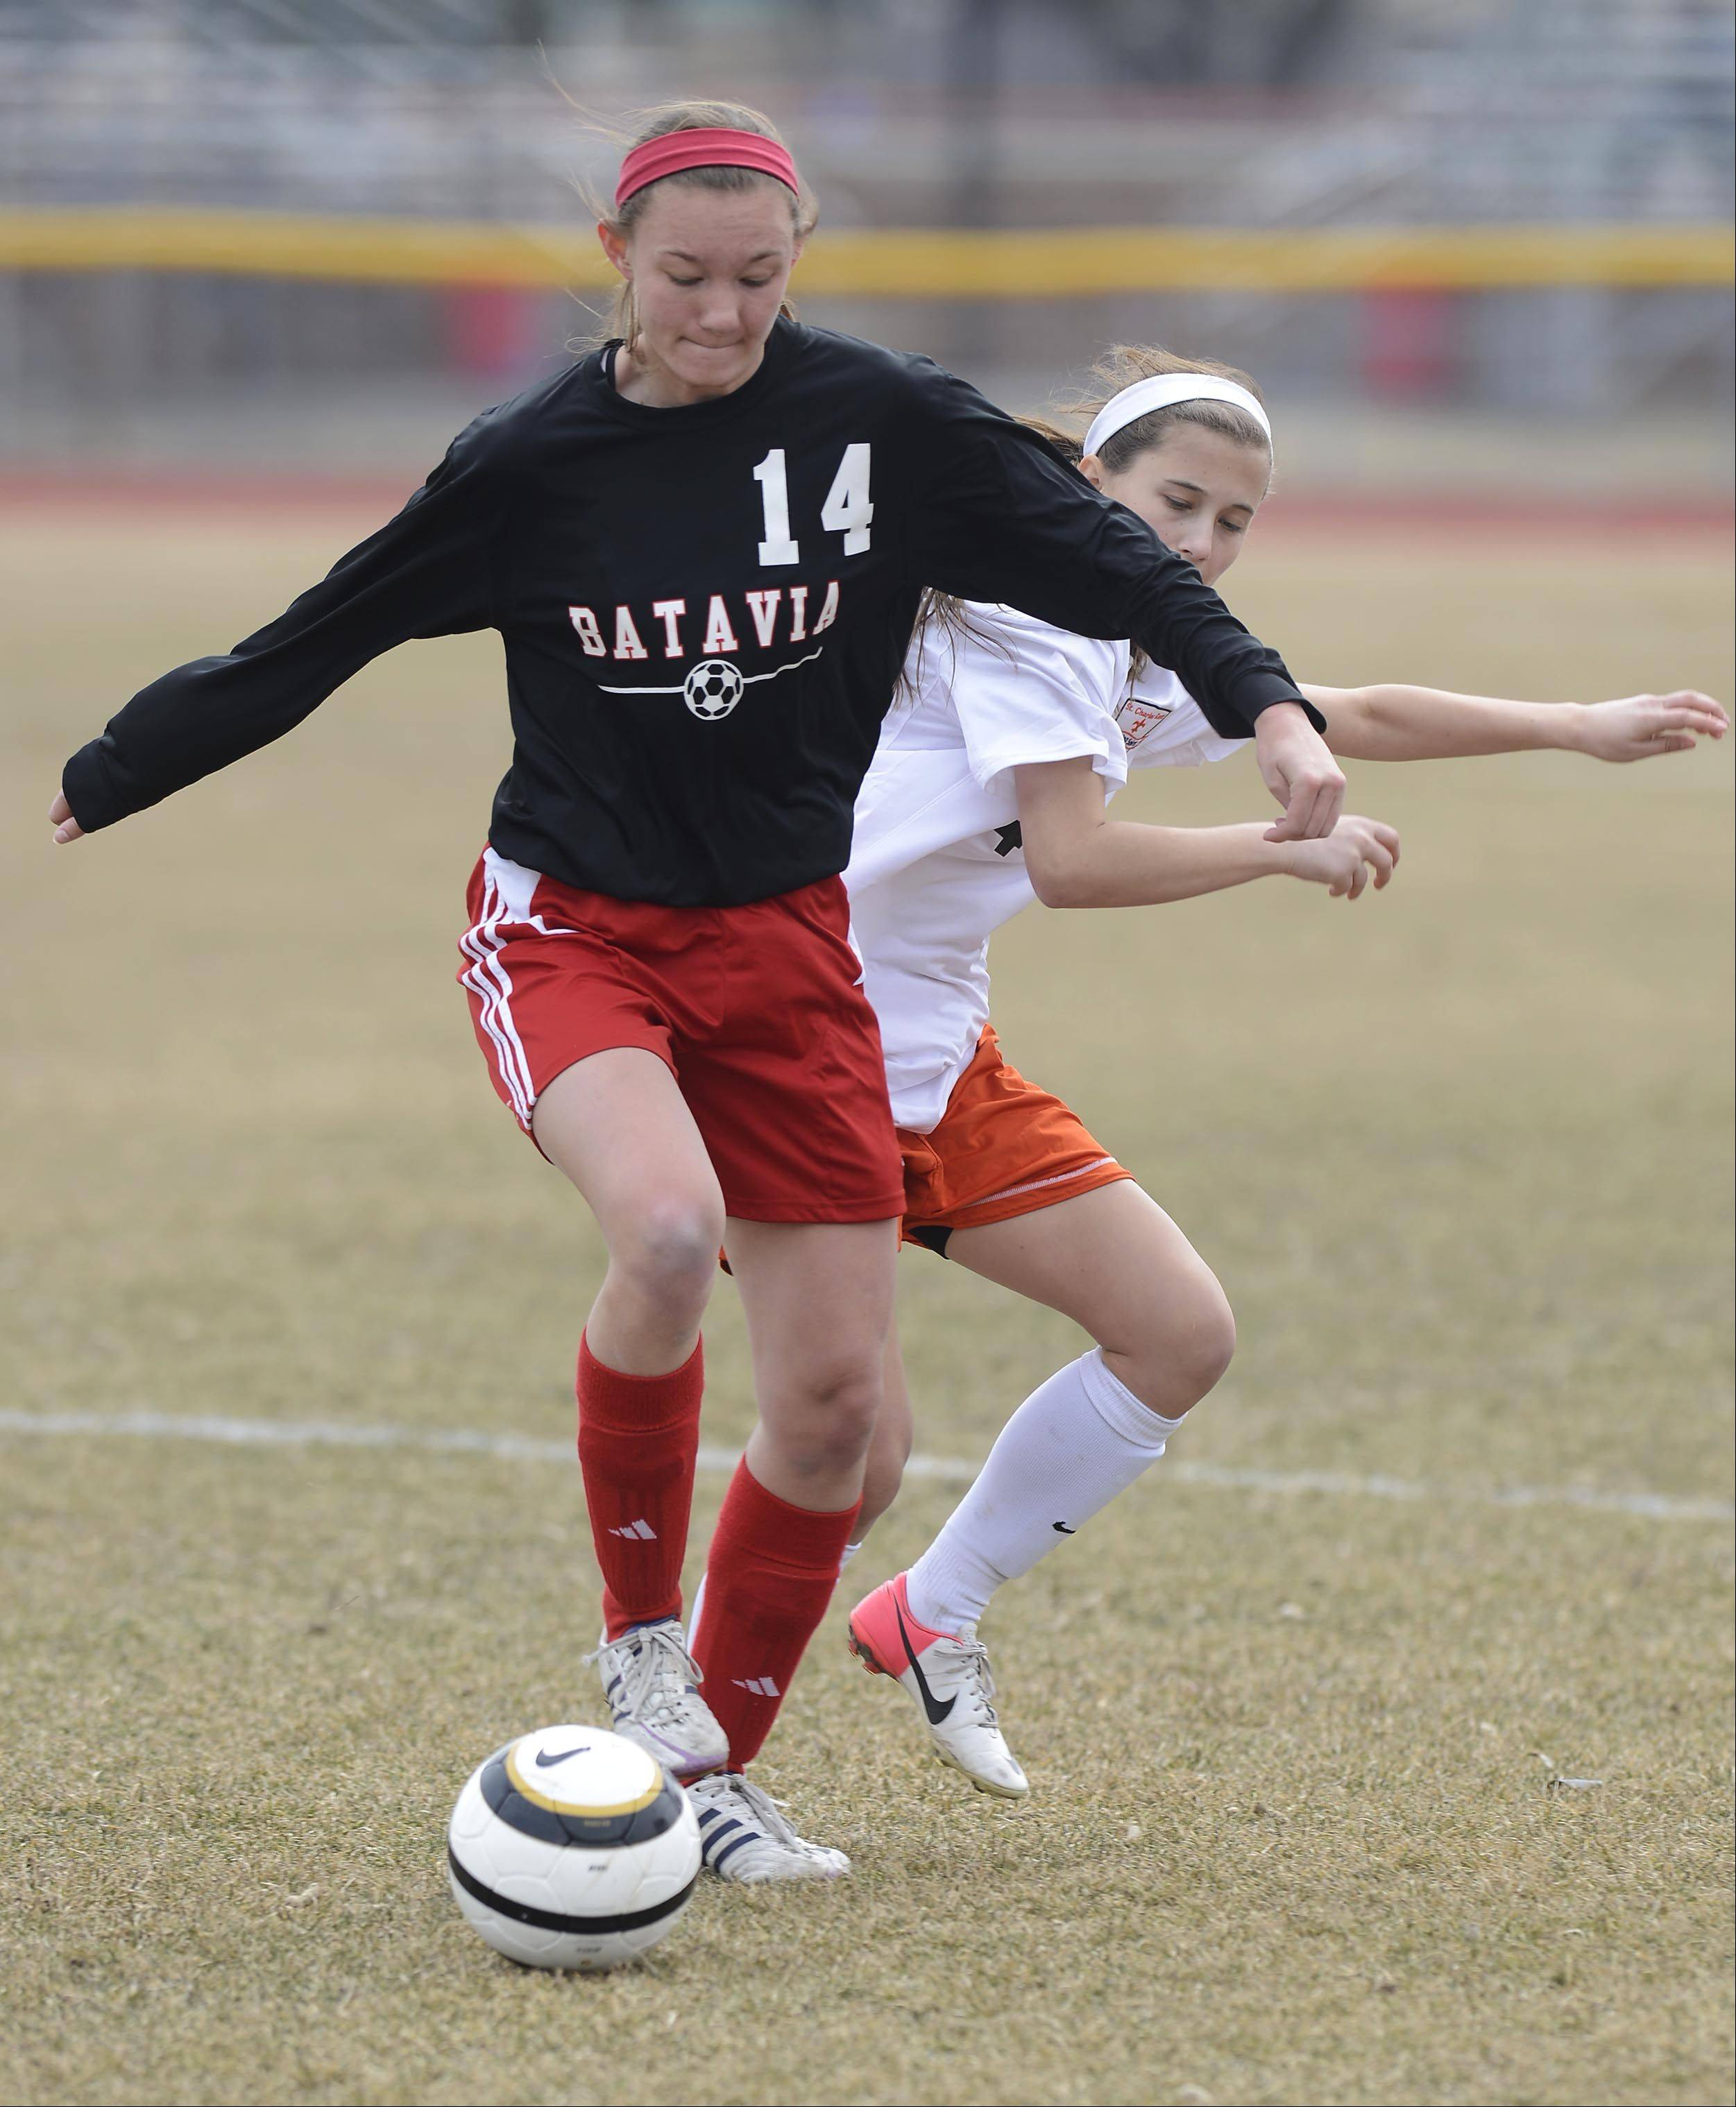 Batavia's Kayla Stolfa, left, tries to fend off St. Charles East's Ally Potterton during Saturday's game.